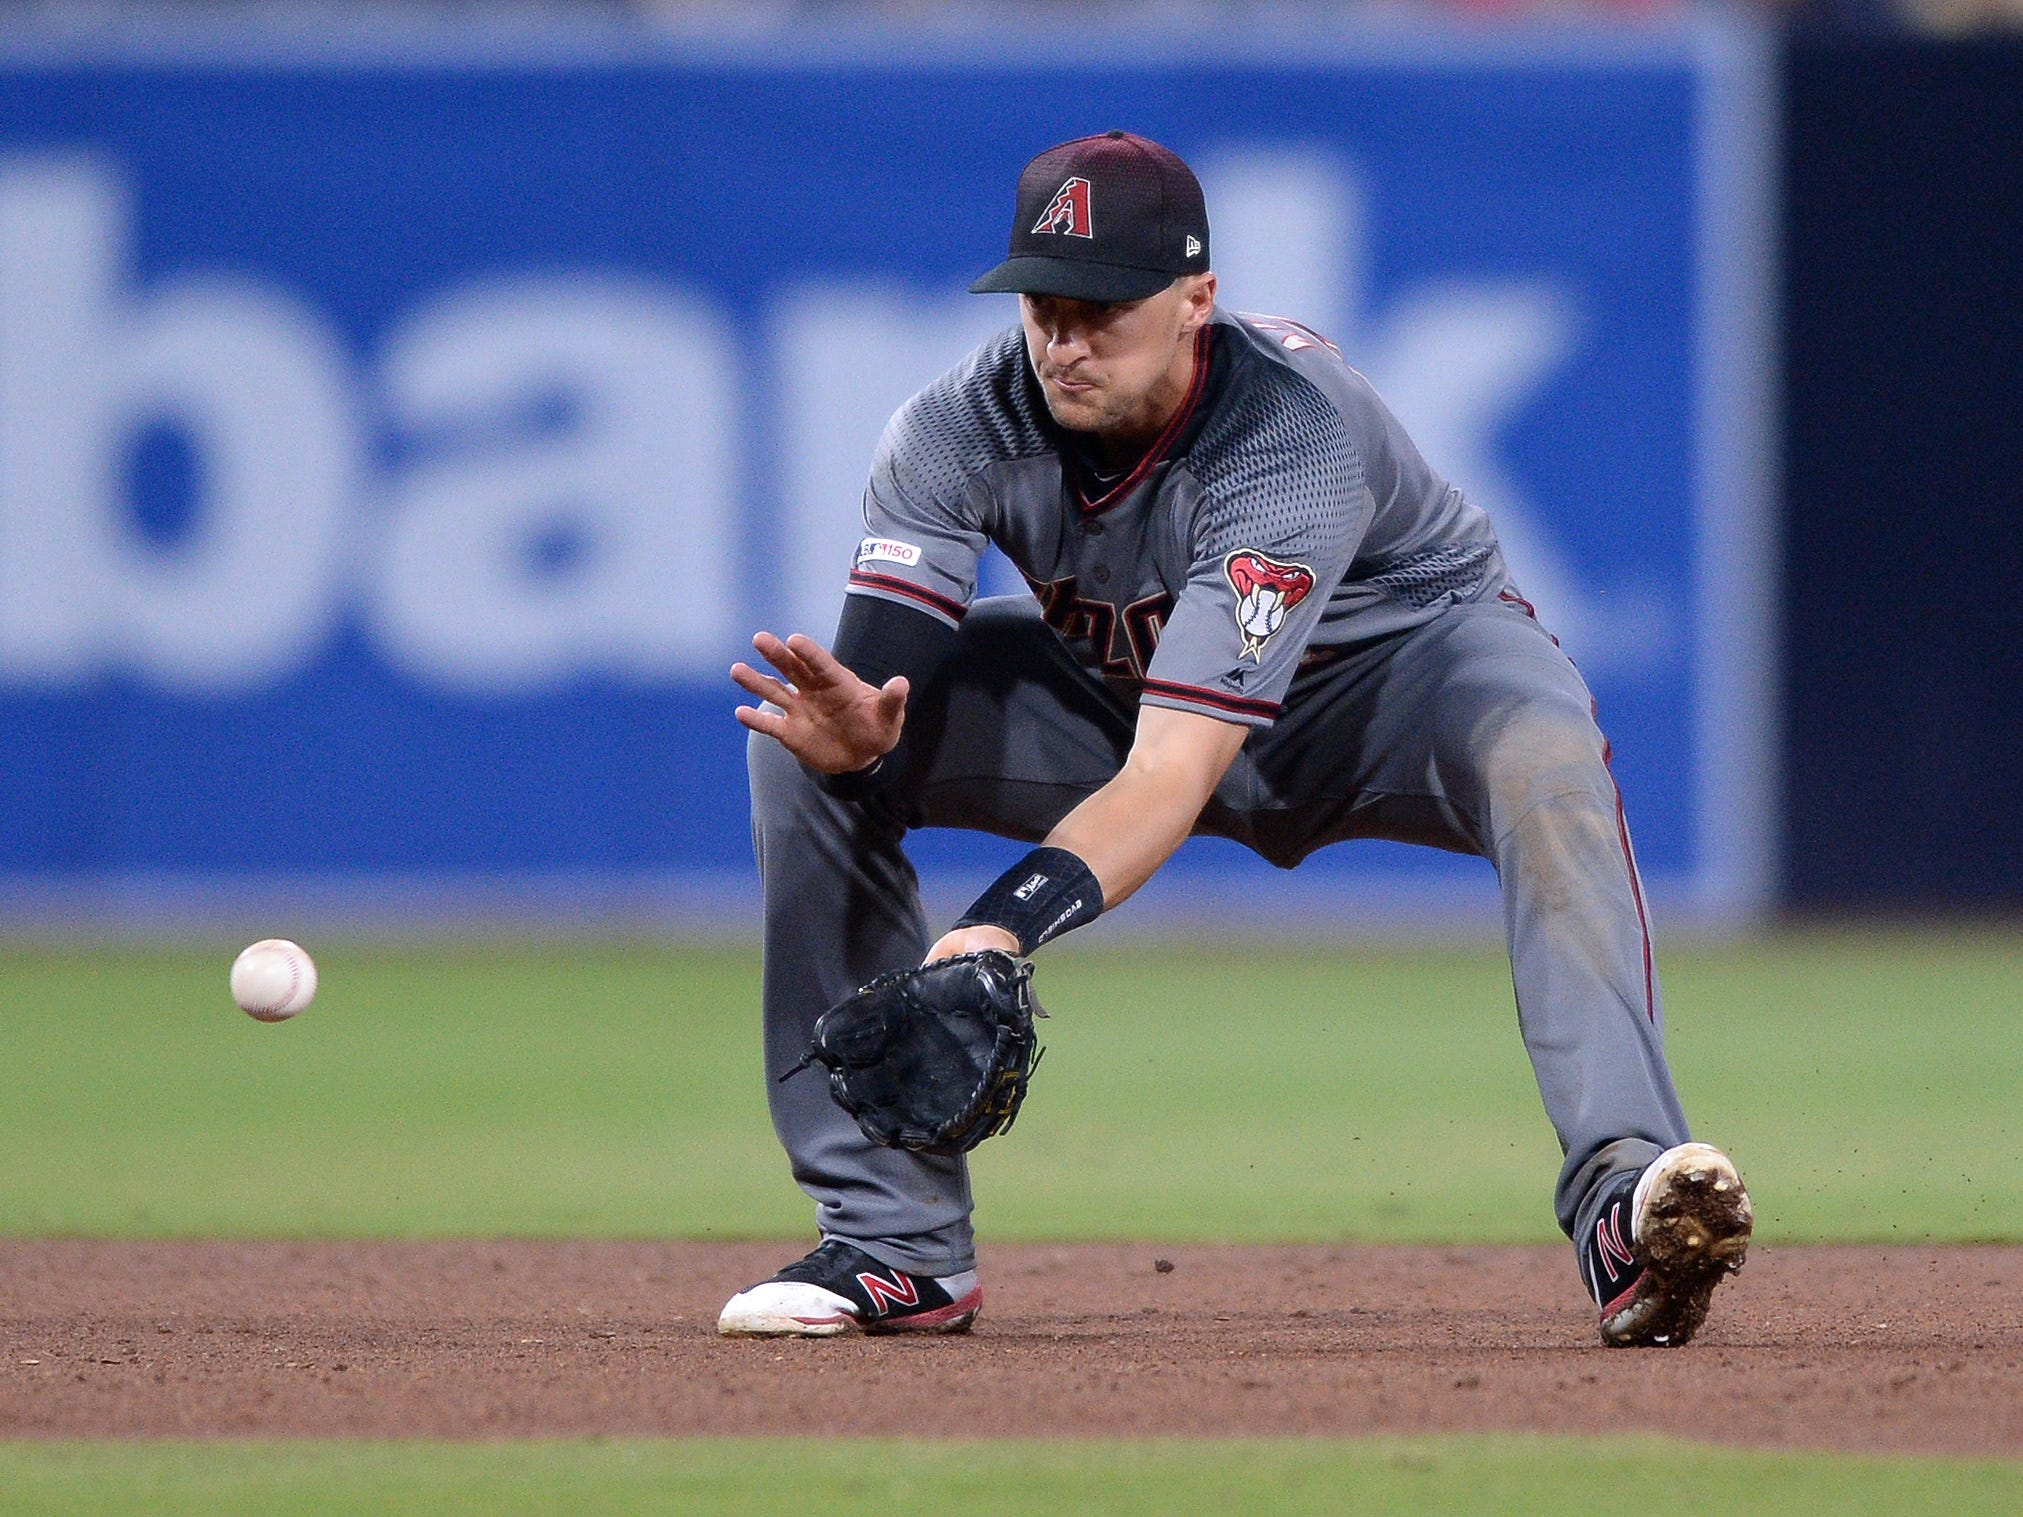 Apr 1, 2019: Arizona Diamondbacks shortstop Nick Ahmed (13) fields a ground ball hit by San Diego Padres relief pitcher Phil Maton (not pictured) before throwing to first base for the out during the seventh inning at Petco Park.